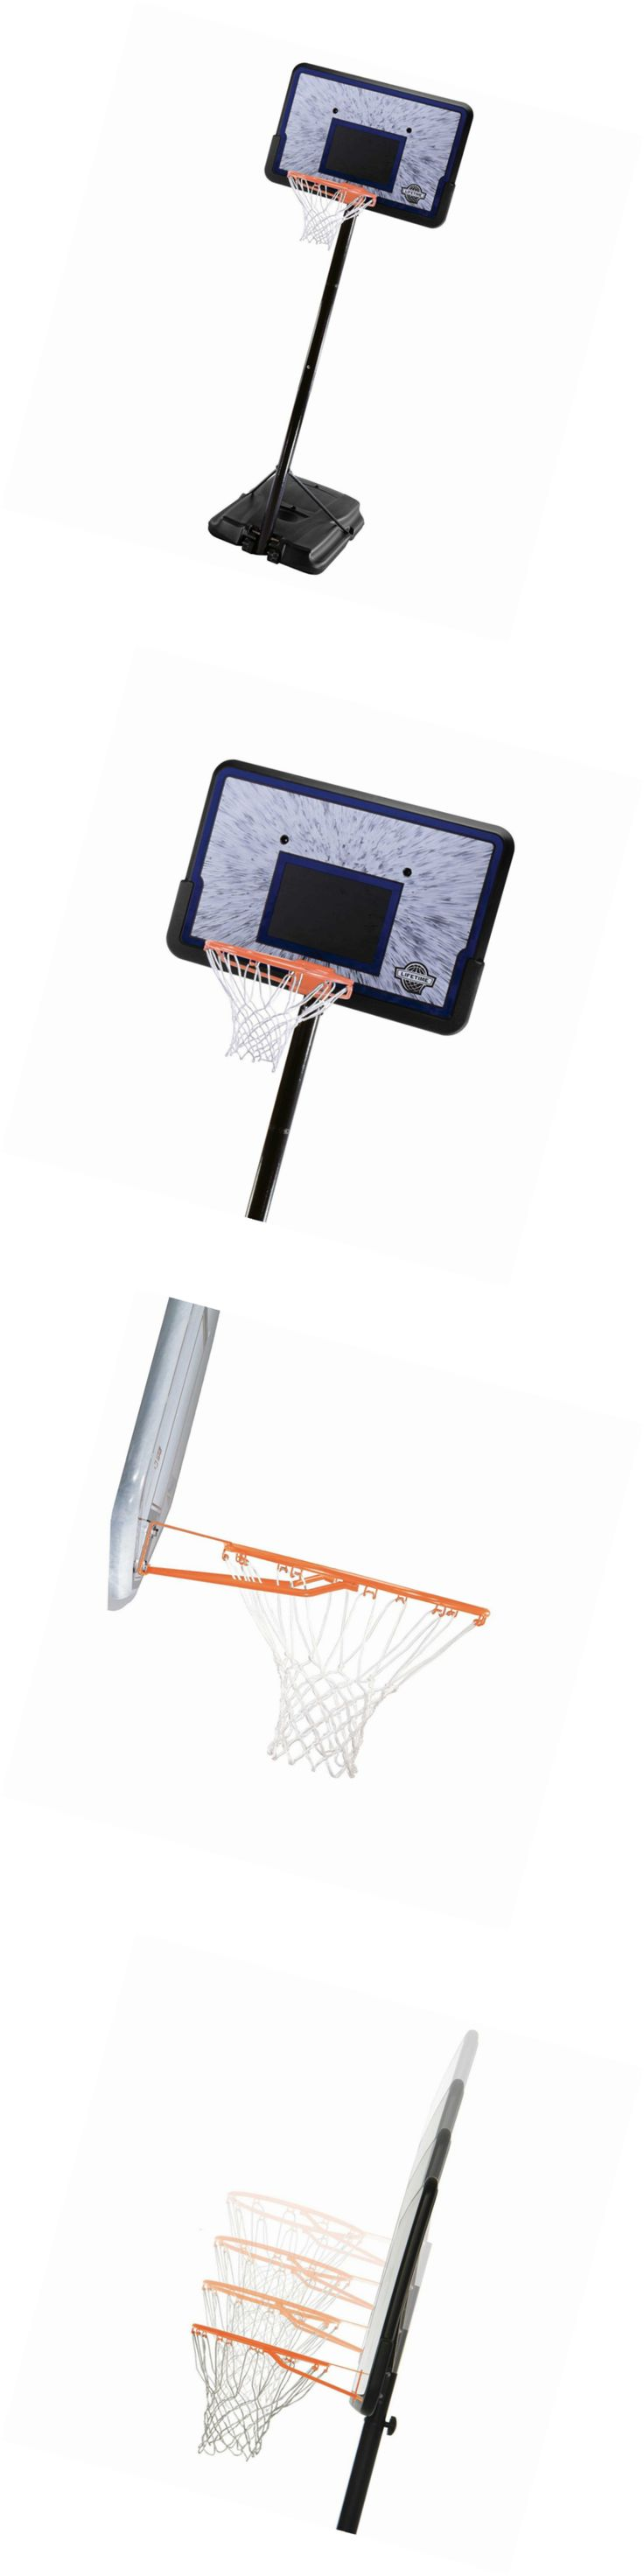 Backboard Systems 21196: Lifetime 1221 Pro Court Height Adjustable Portable Basketball System, 44 Inch Ba -> BUY IT NOW ONLY: $116 on eBay!